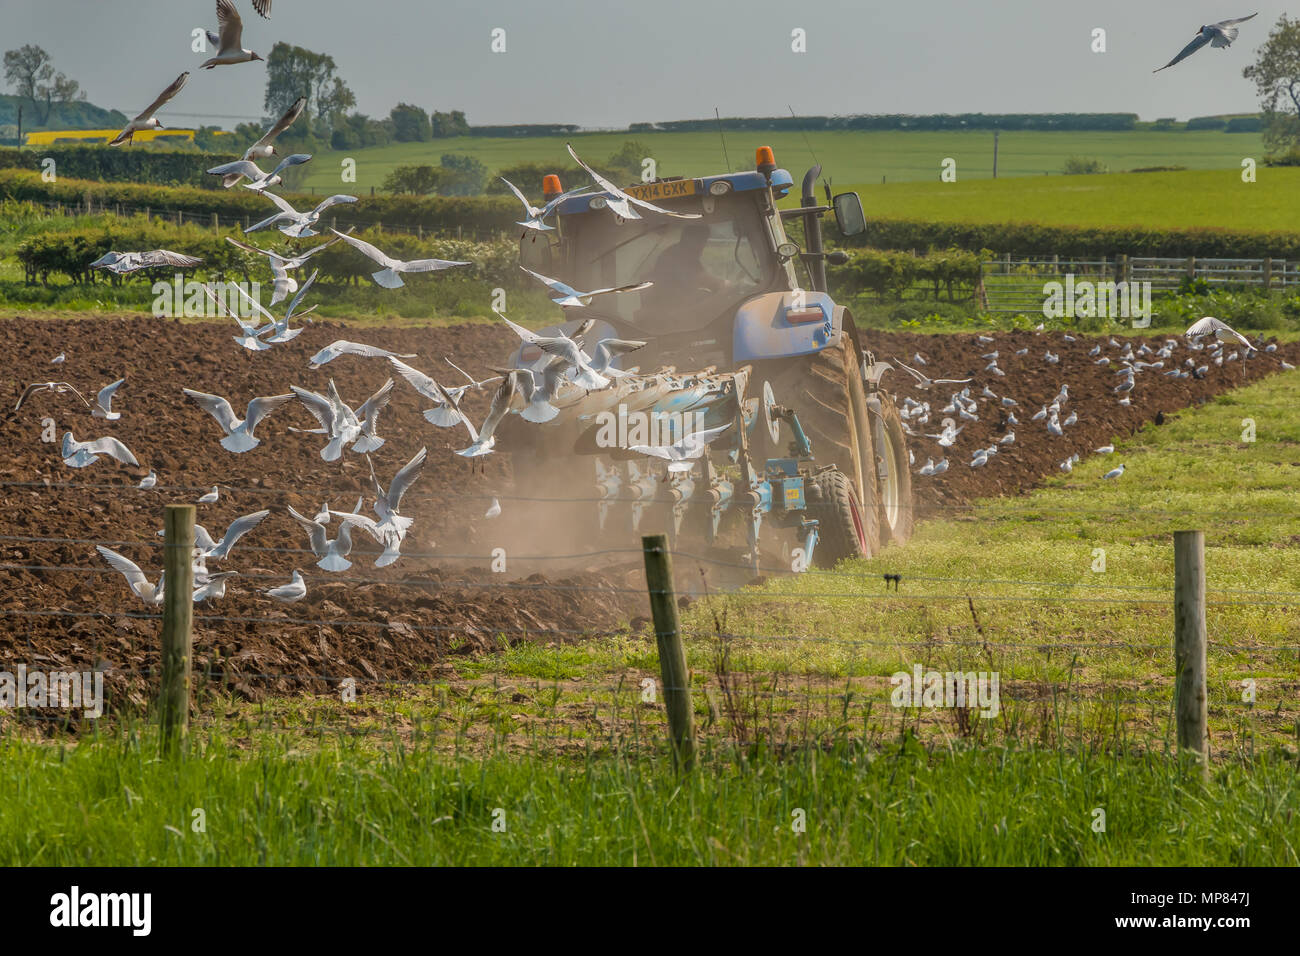 A tractor and plough at work in dusty spring conditions, with a flock of gulls following the plough - Stock Image